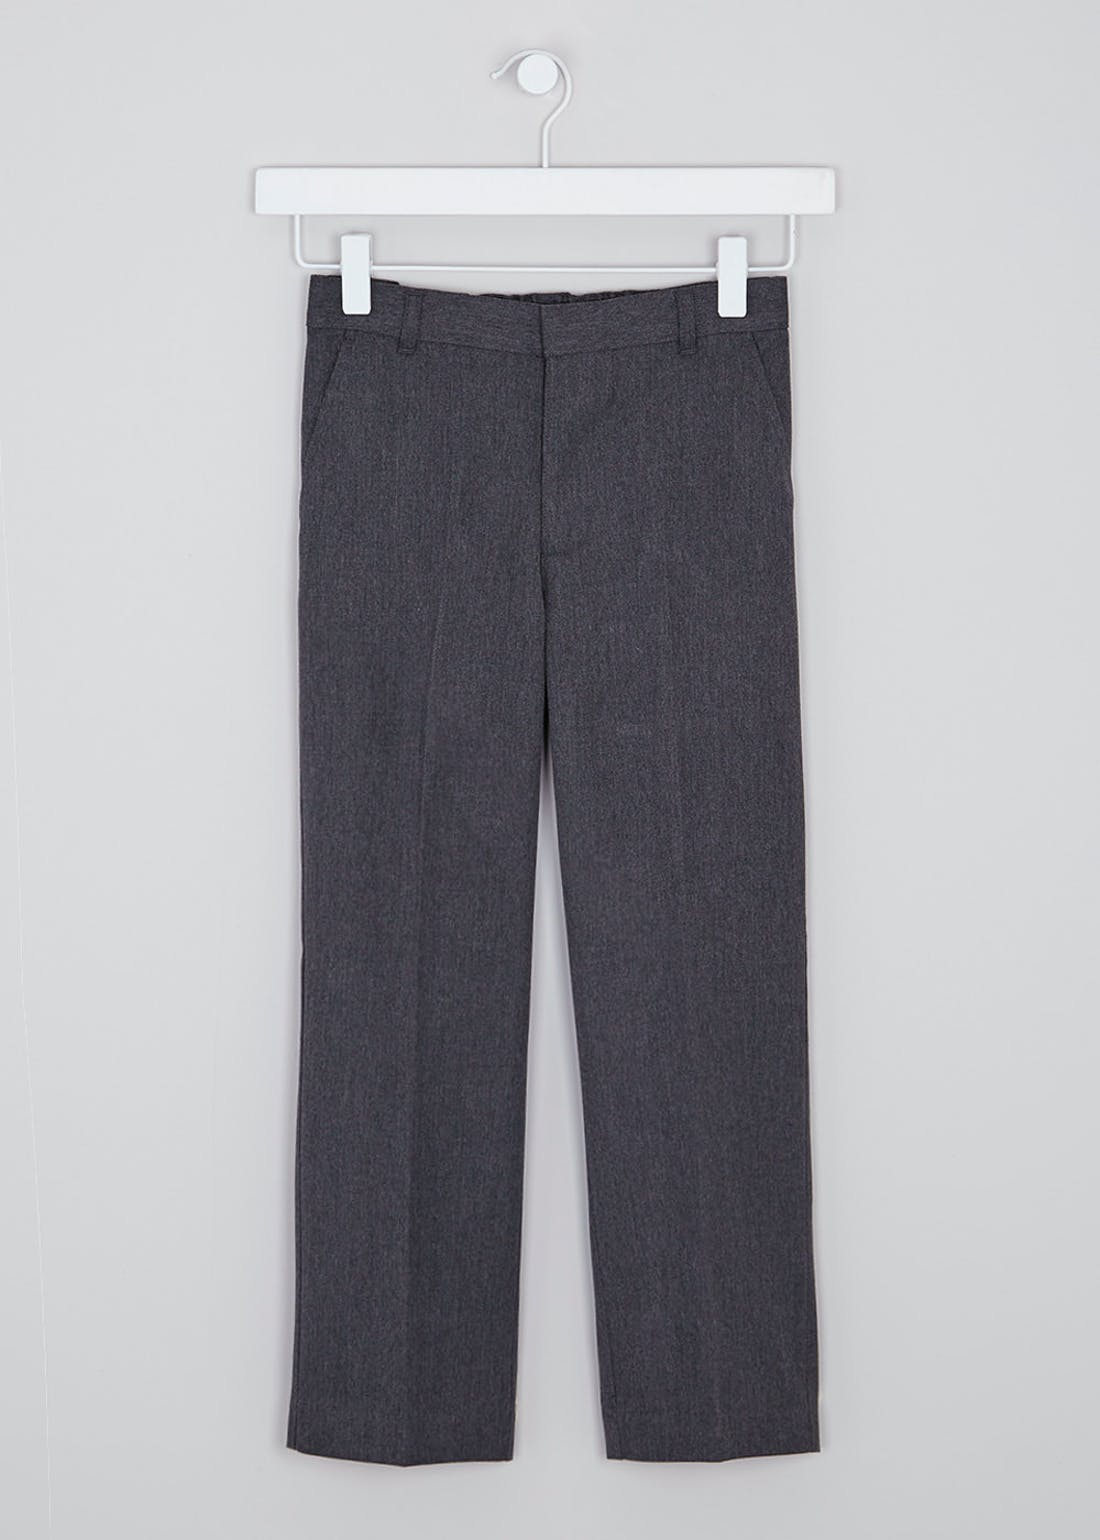 Boys Grey 2 Pack Classic Fit School Trousers (3-13yrs)